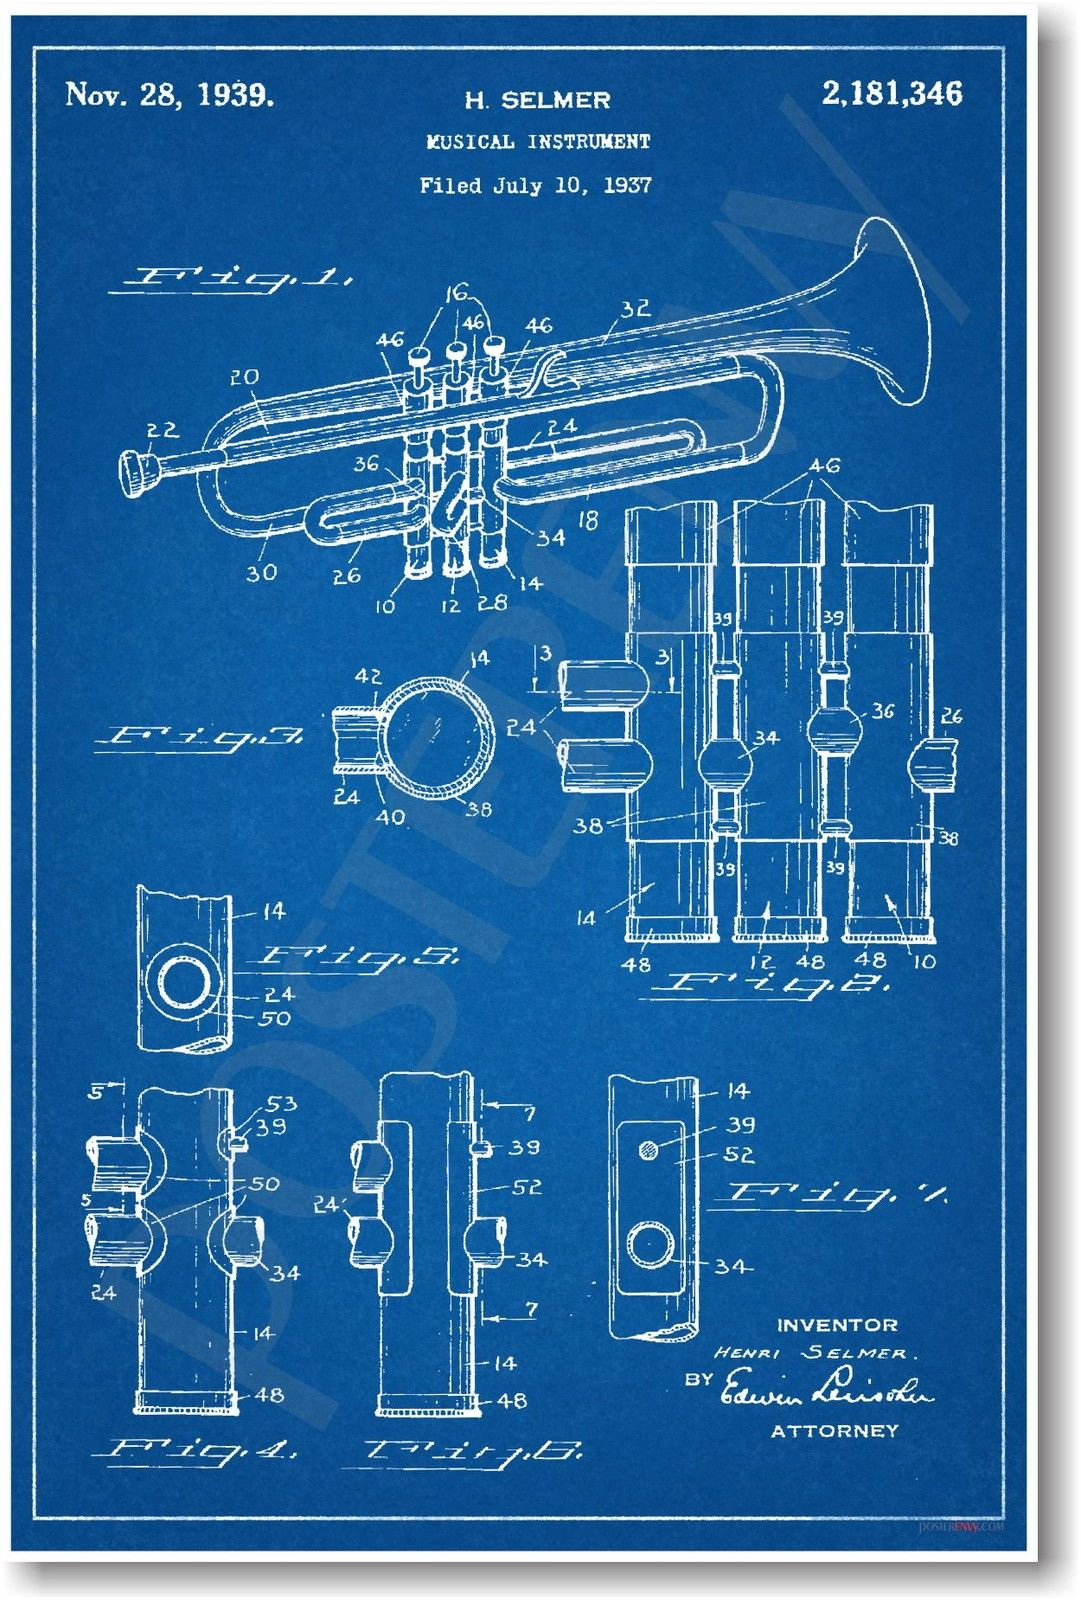 173240 Trumpet Patent Vintage Invention Patent Decor WALL PRINT POSTER US